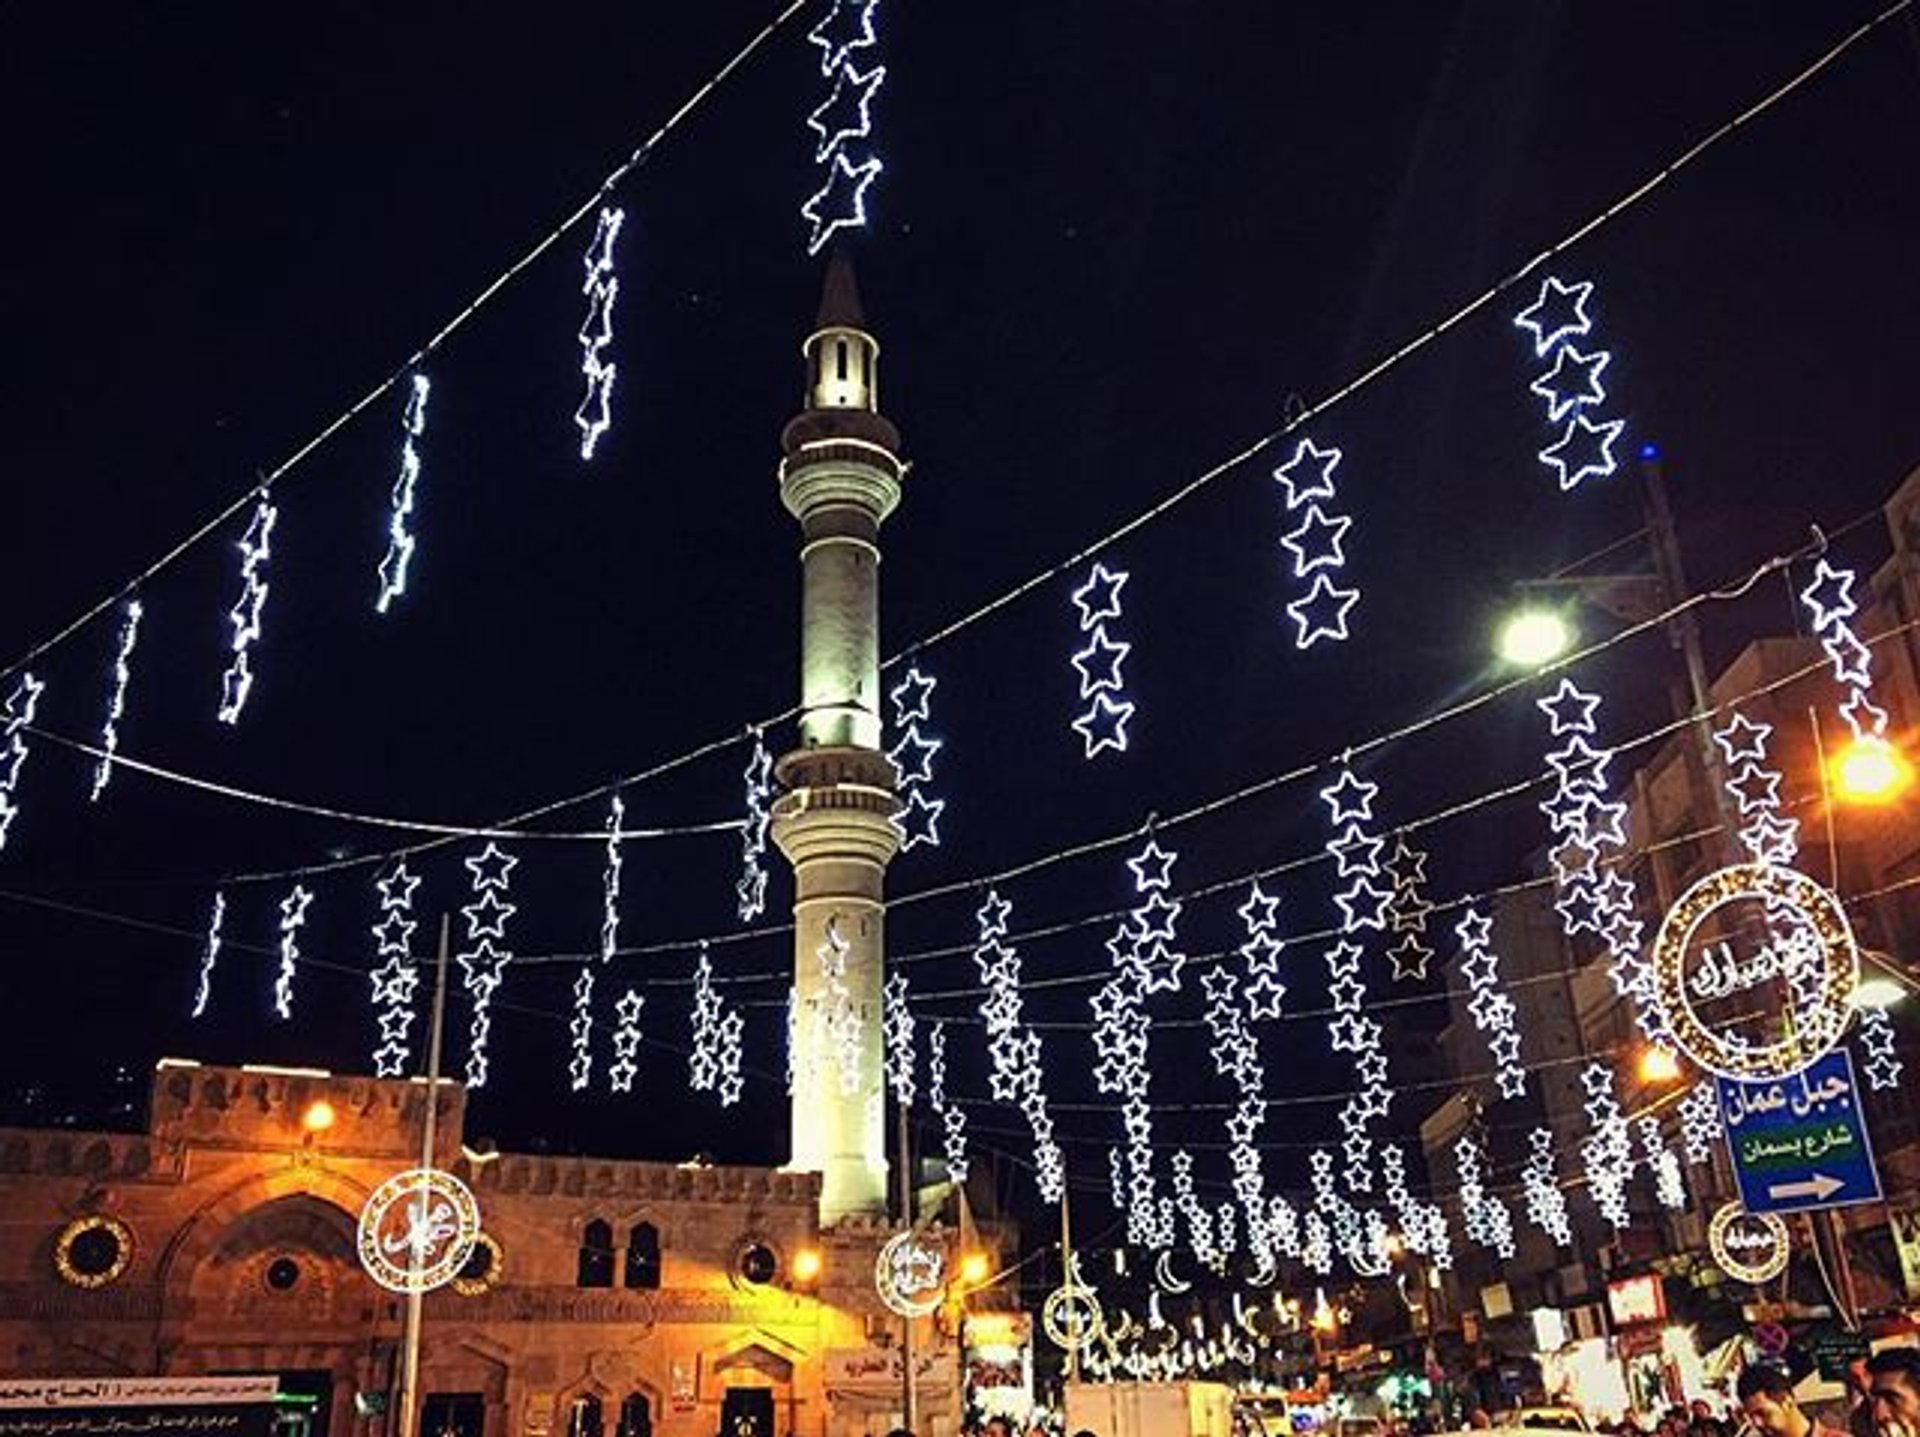 Eid al-Fitr or the End of Ramadan in Jordan 2019 - Best Time